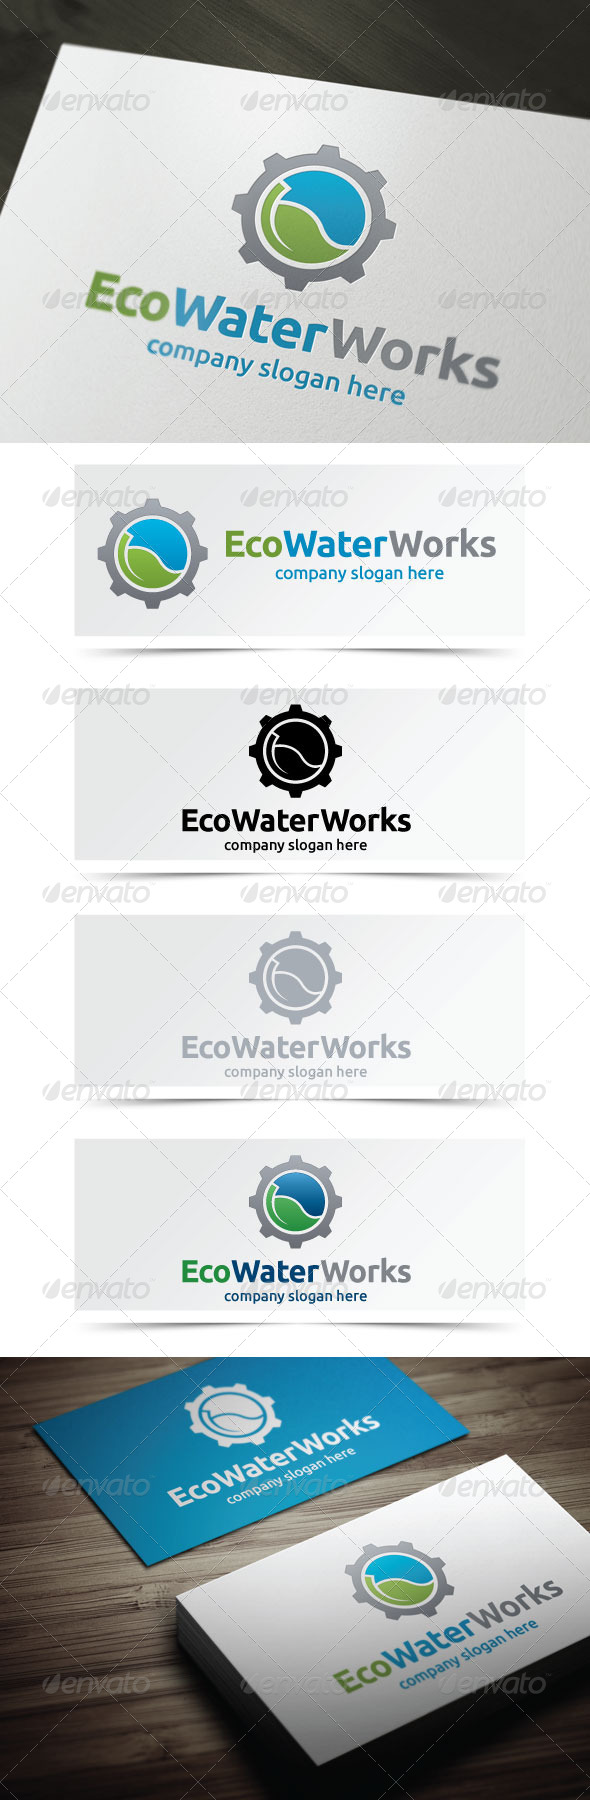 Eco Water Works